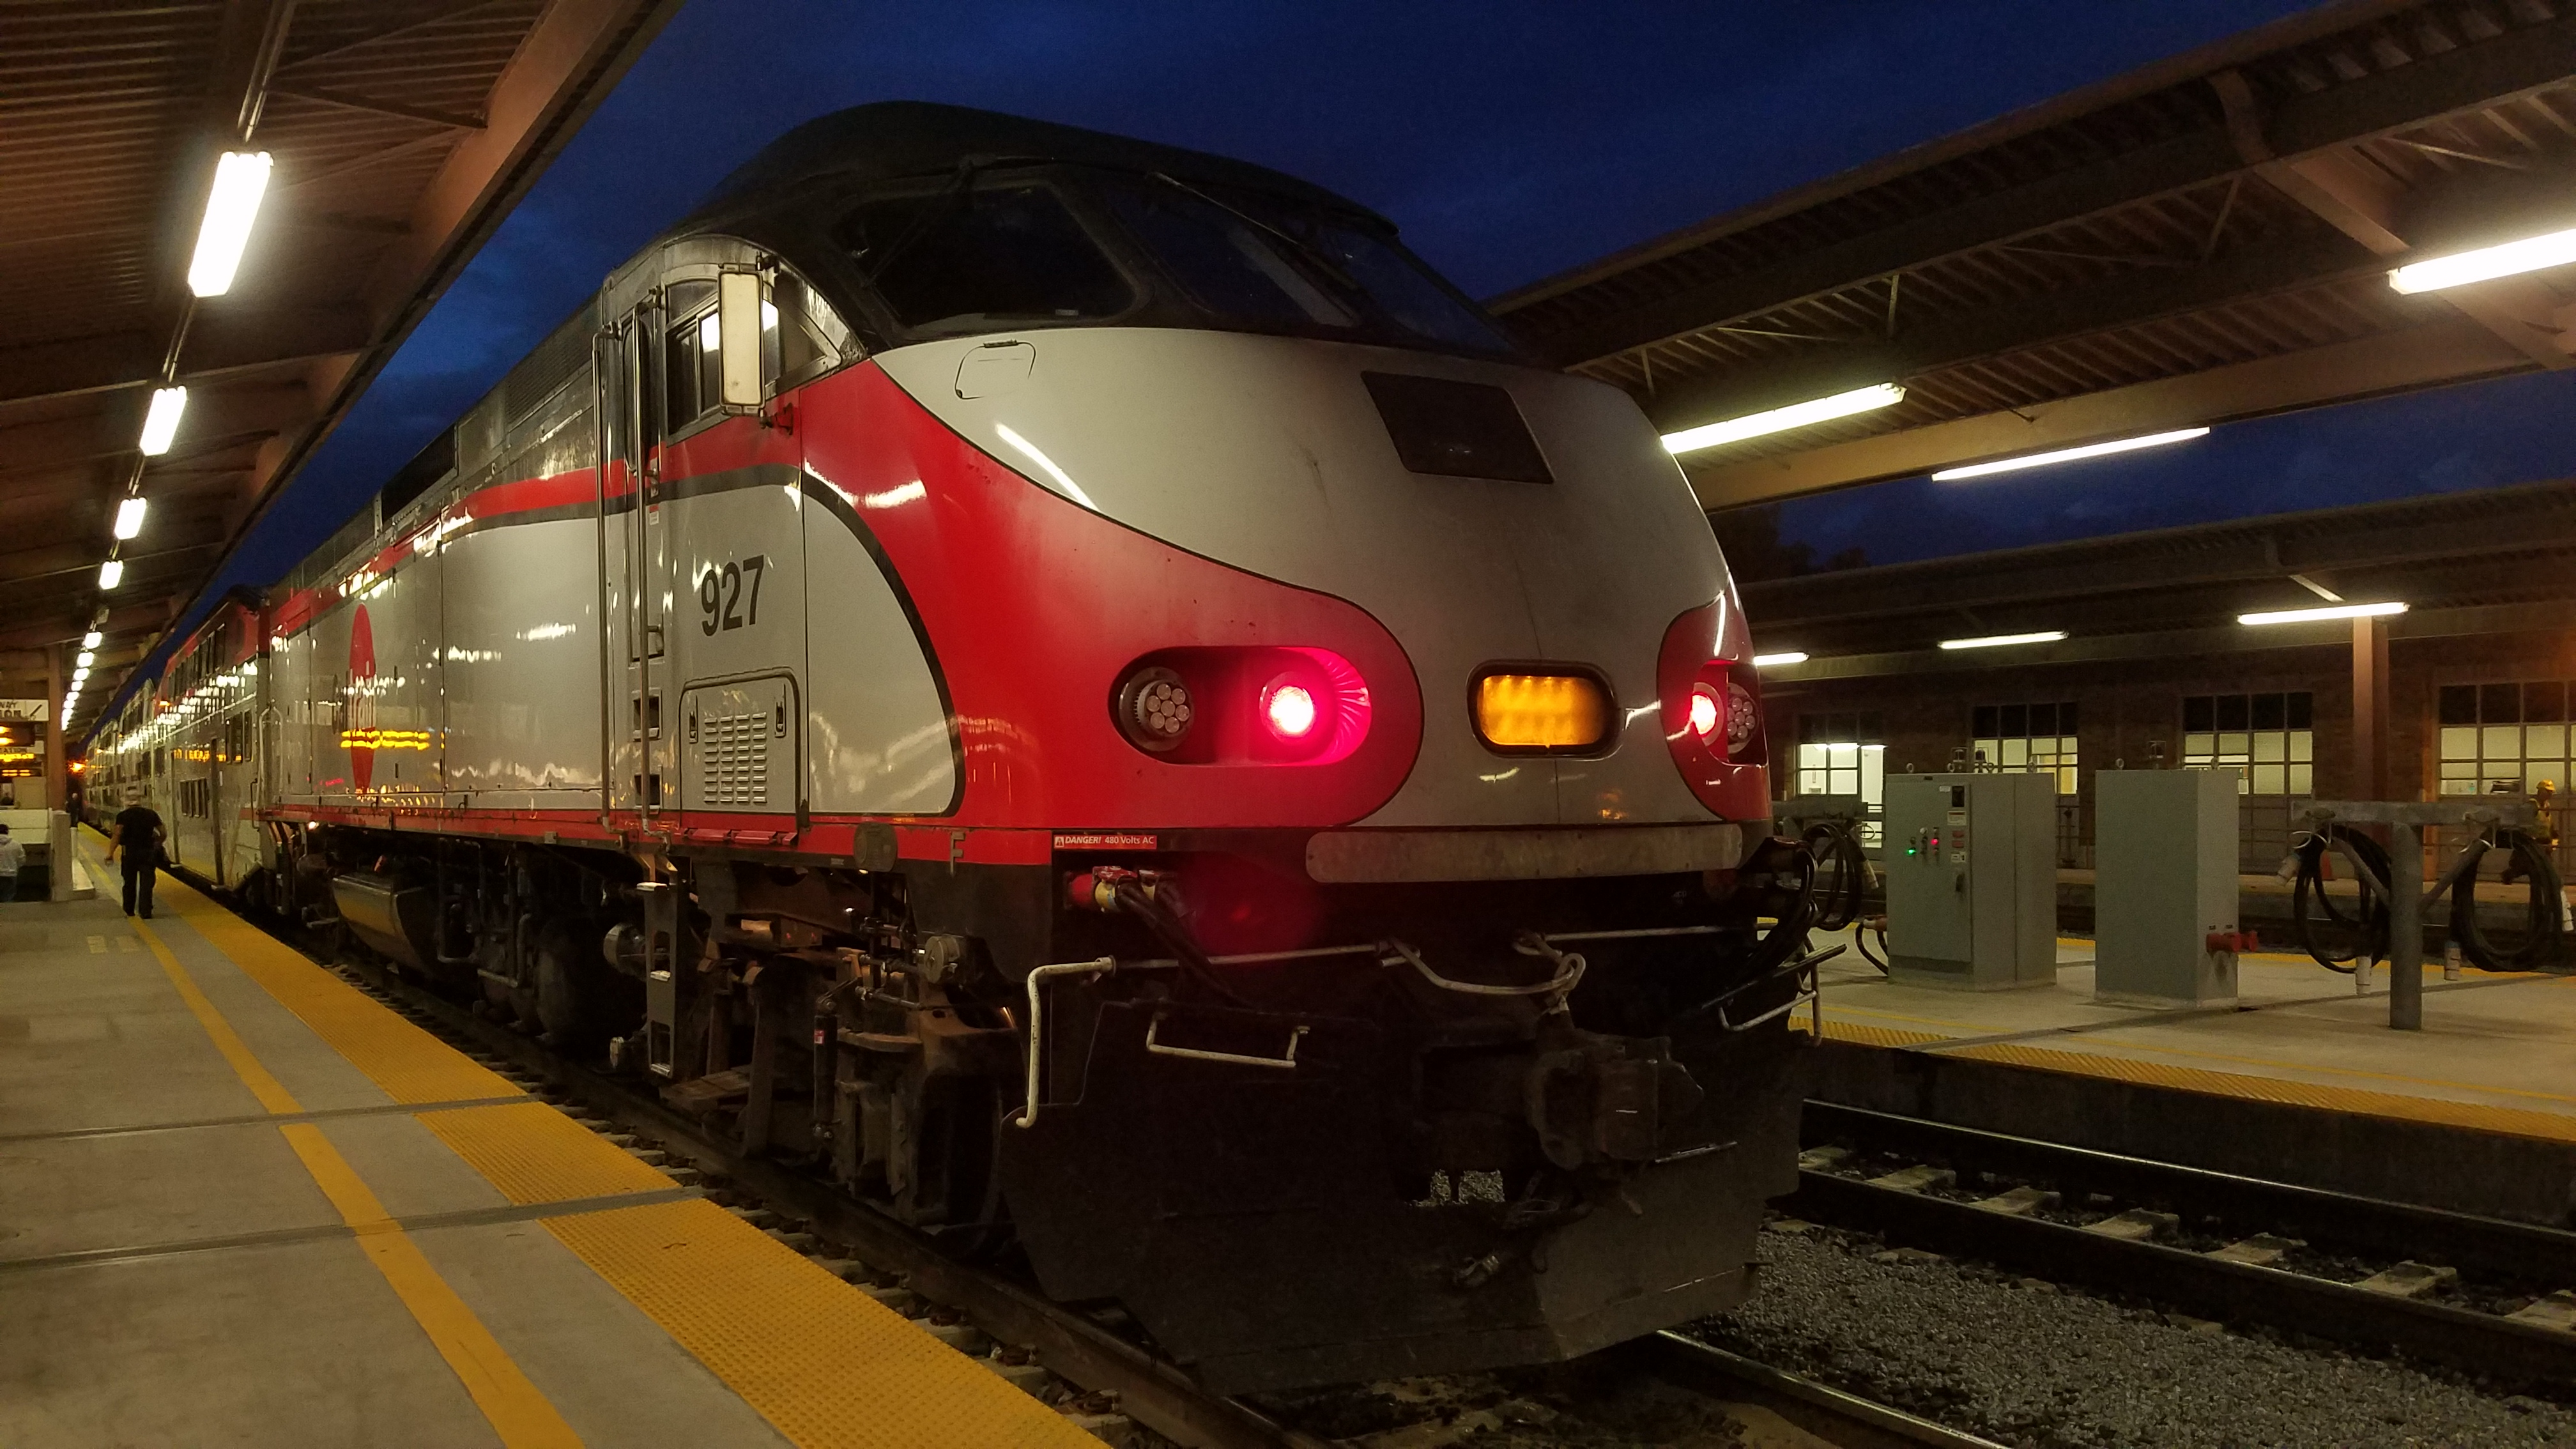 Caltrain locomotive unit 927 acting as a trailer on a northbound train at Belmont Station